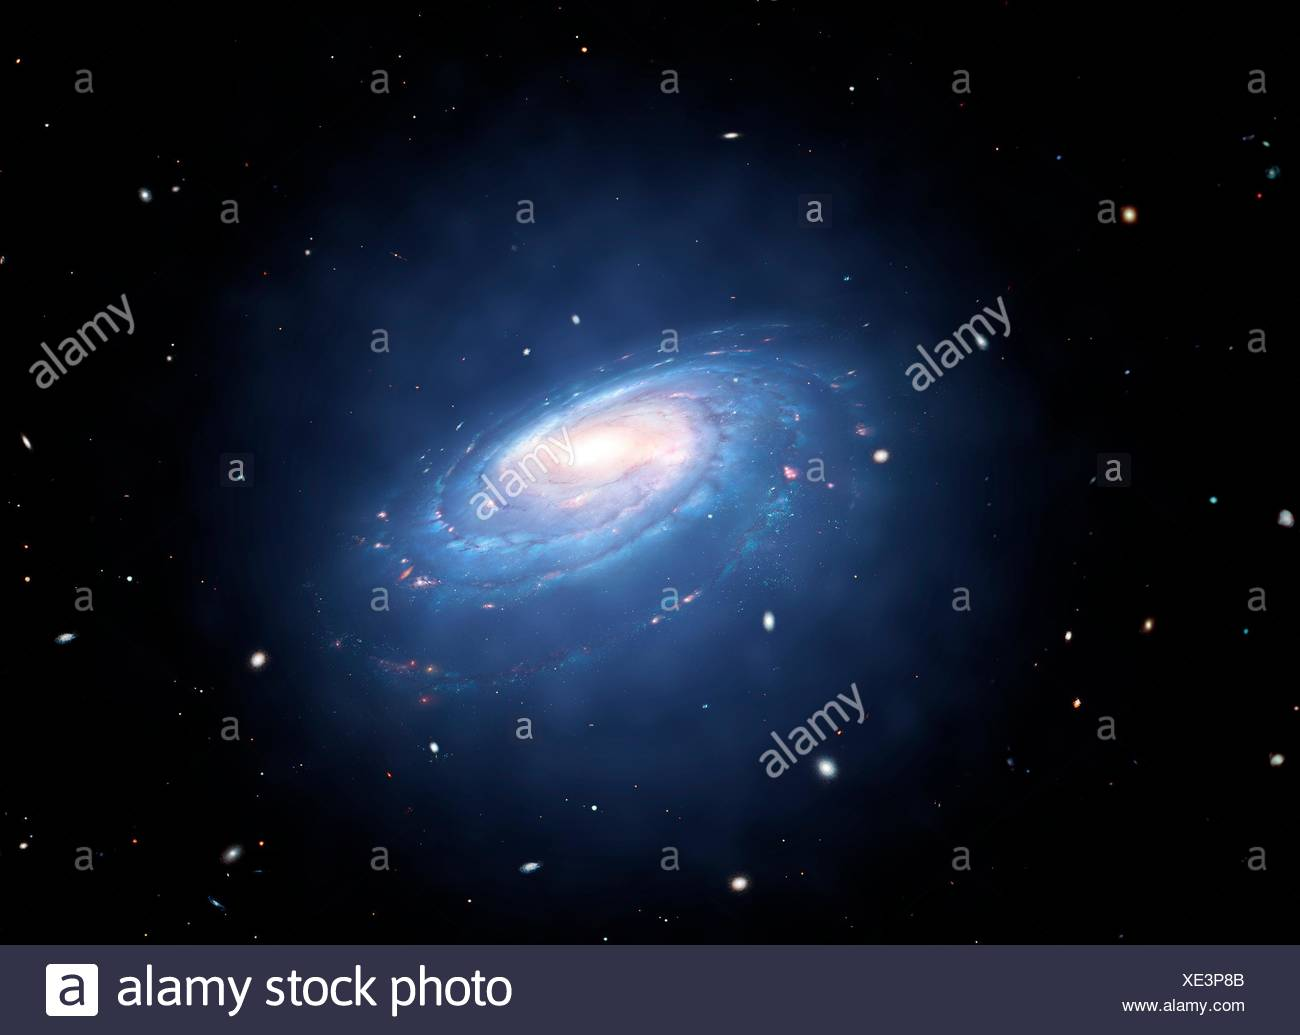 Galaxy and associated dark matter halo. A dark matter halo is a supposed galaxy component that enshrouds the galactic disc and extends well beyond the edge of the visible galaxy. Its mass dominates the total mass of the galaxy system. Purportedly consisting of dark matter, halos cannot be observed directly, but their existence is inferred through their effects on the motions of stars and gas in galaxies. - Stock Image